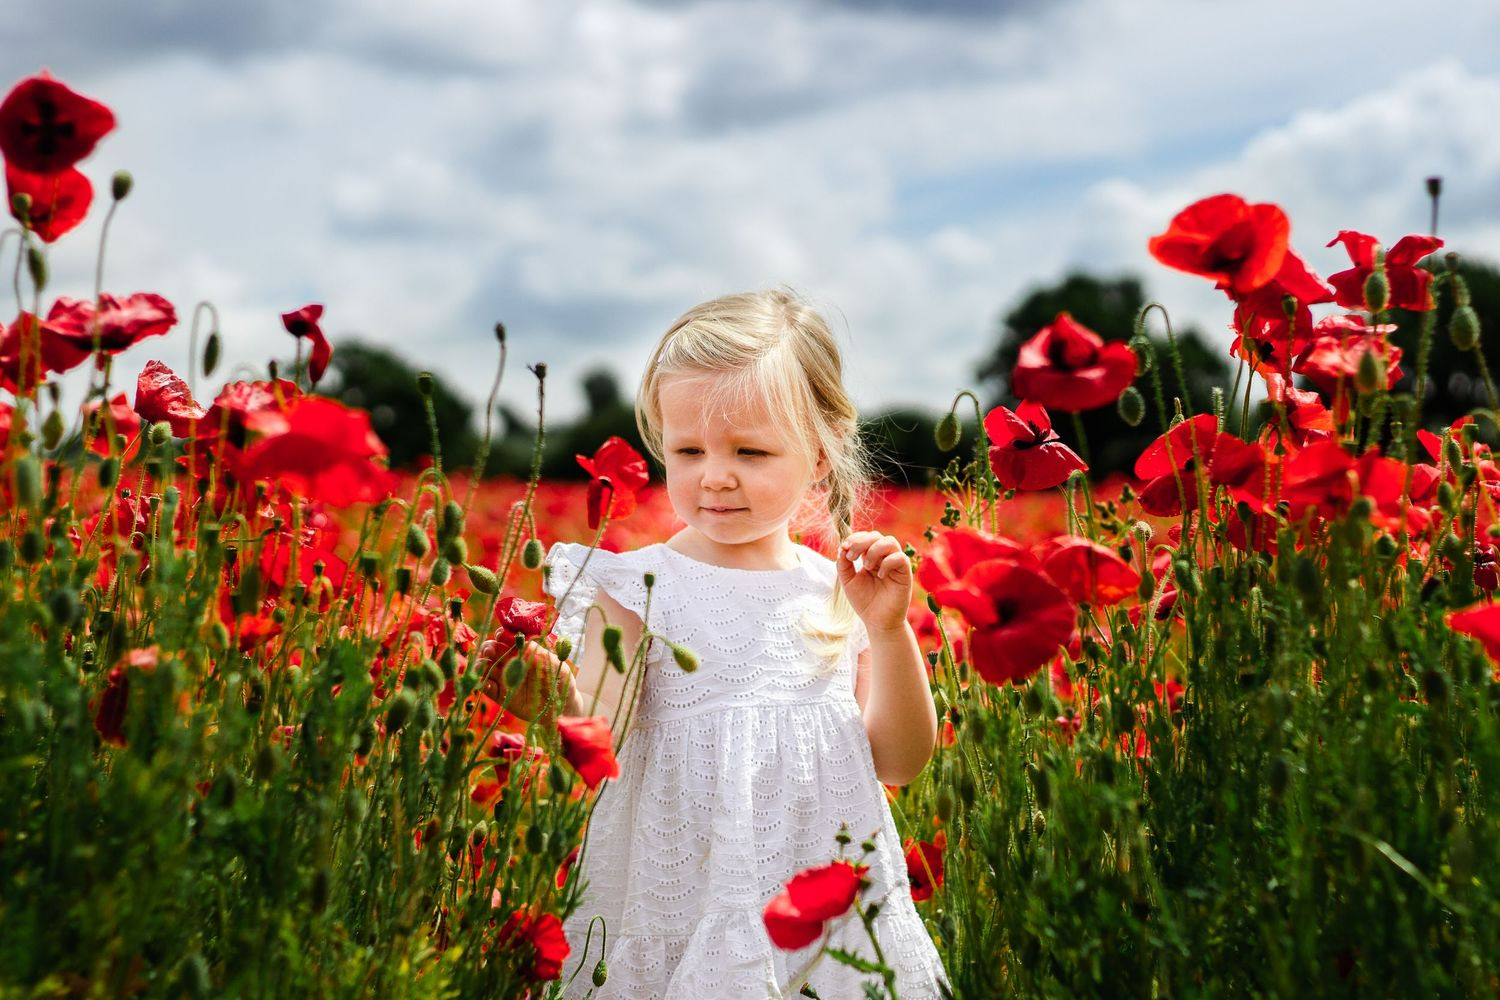 On a sunny day in a poppy field a 2 year old in a white dress inspects the flowers.